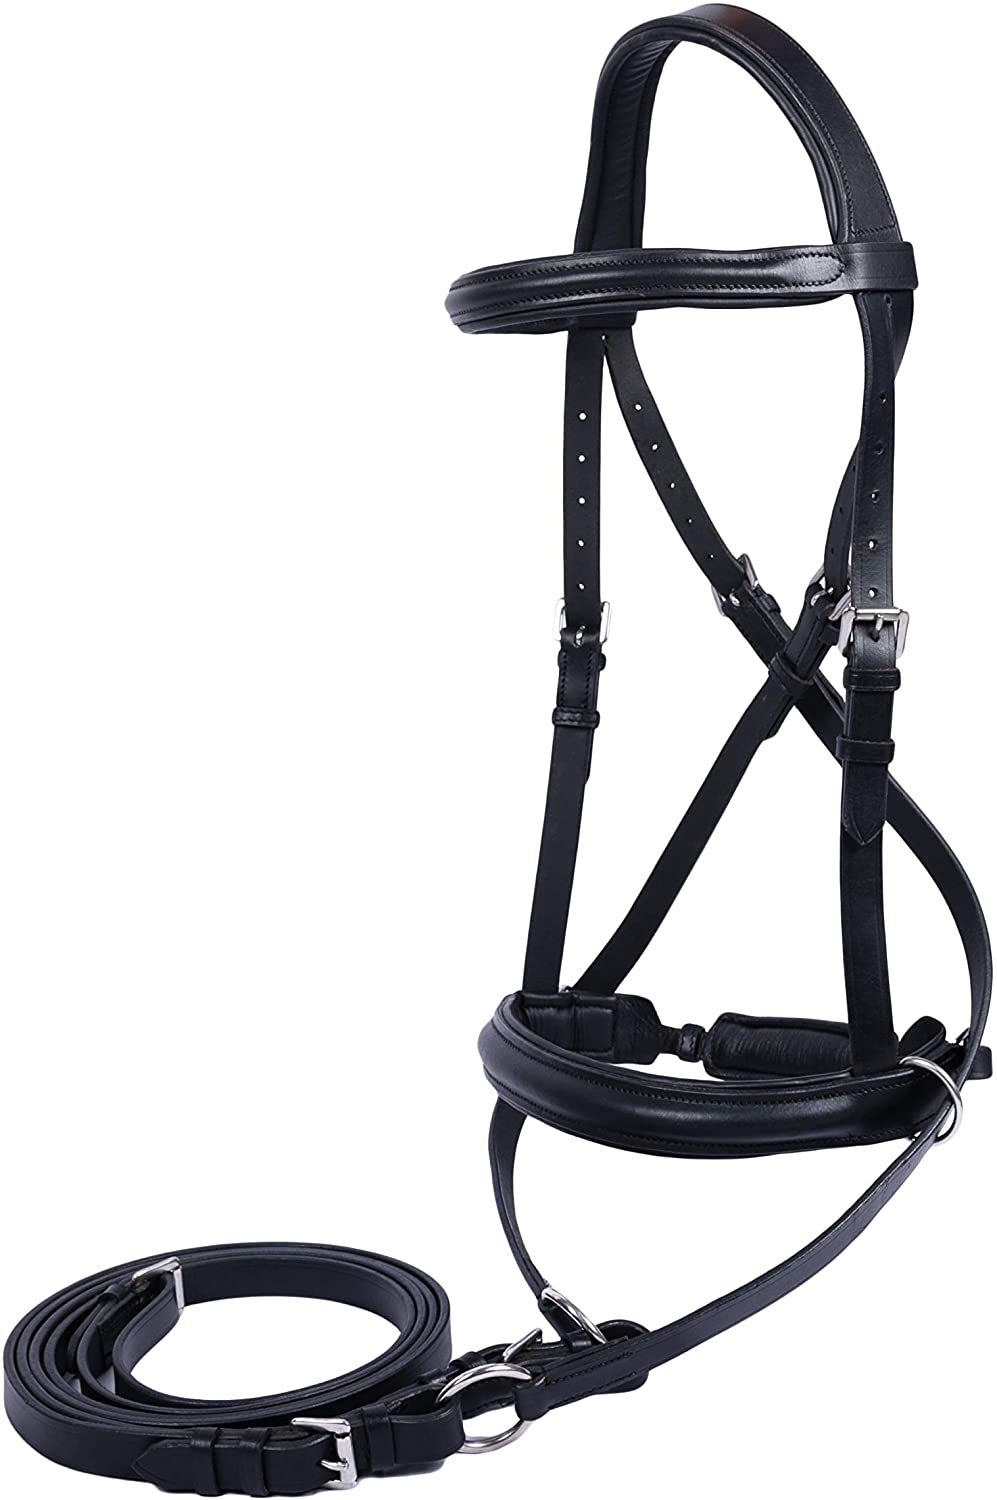 Full BLACK New ** Cross Over ** Bitless Leather Bridle with web grip reins